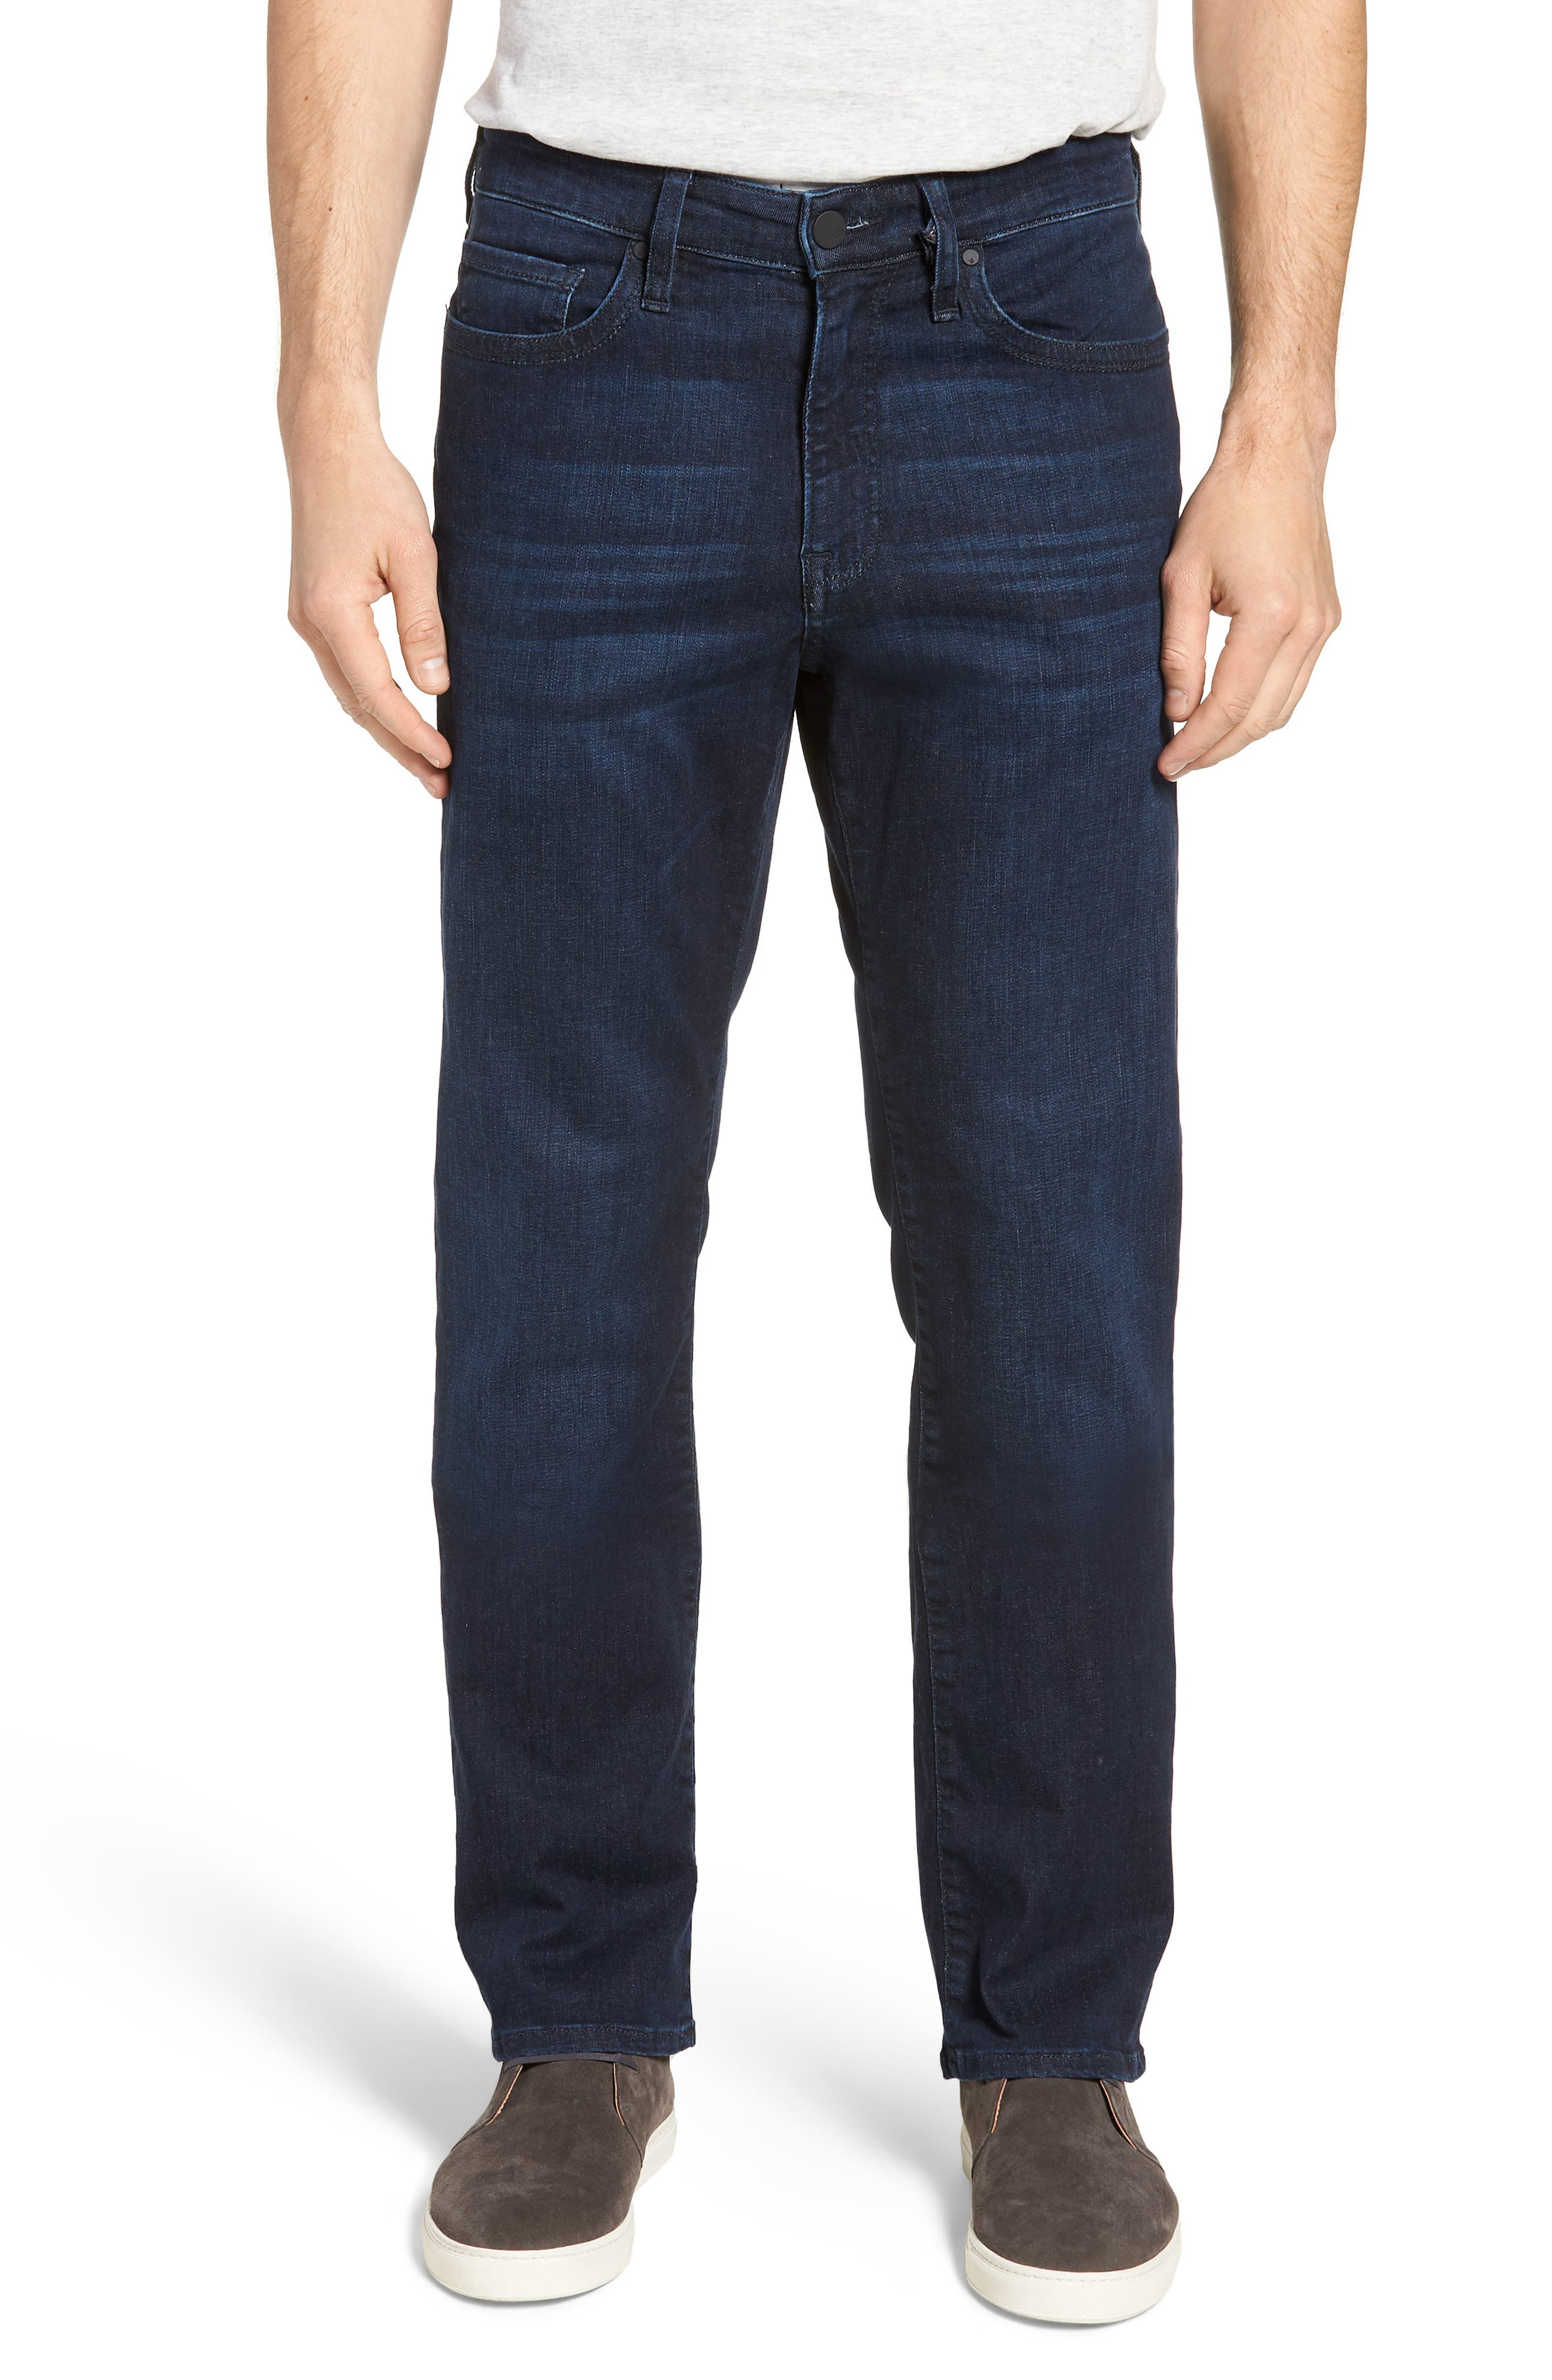 34 Heritage Charisma Relaxed Fit Jeans (Dark Milan)